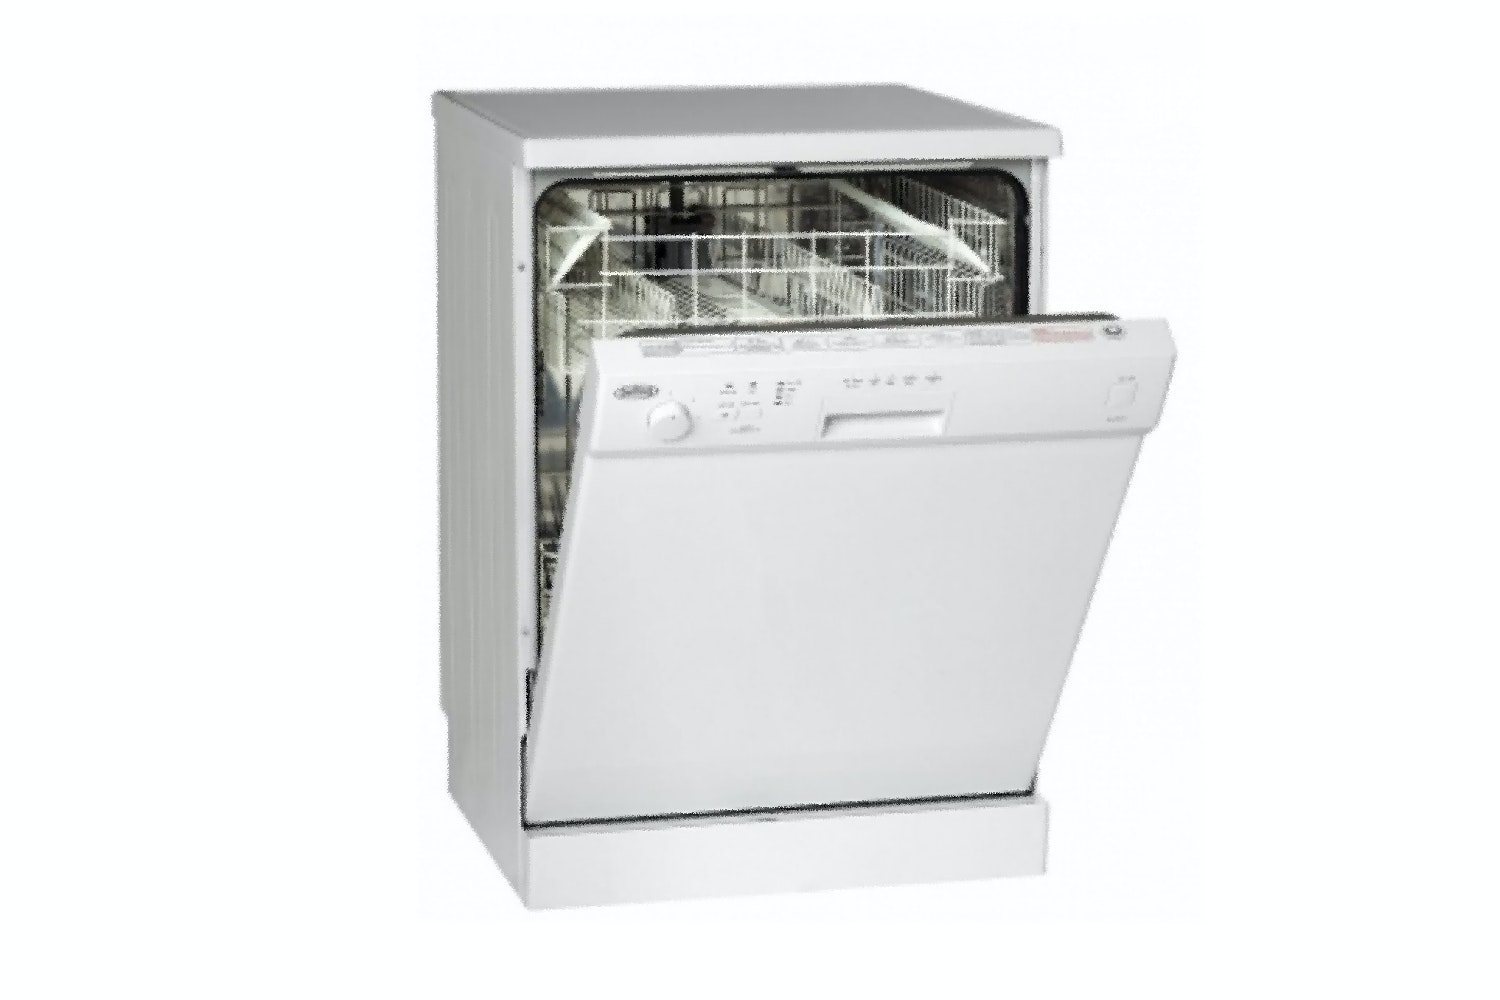 Belling Freestanding Dishwasher   12 Place   BFD614WH